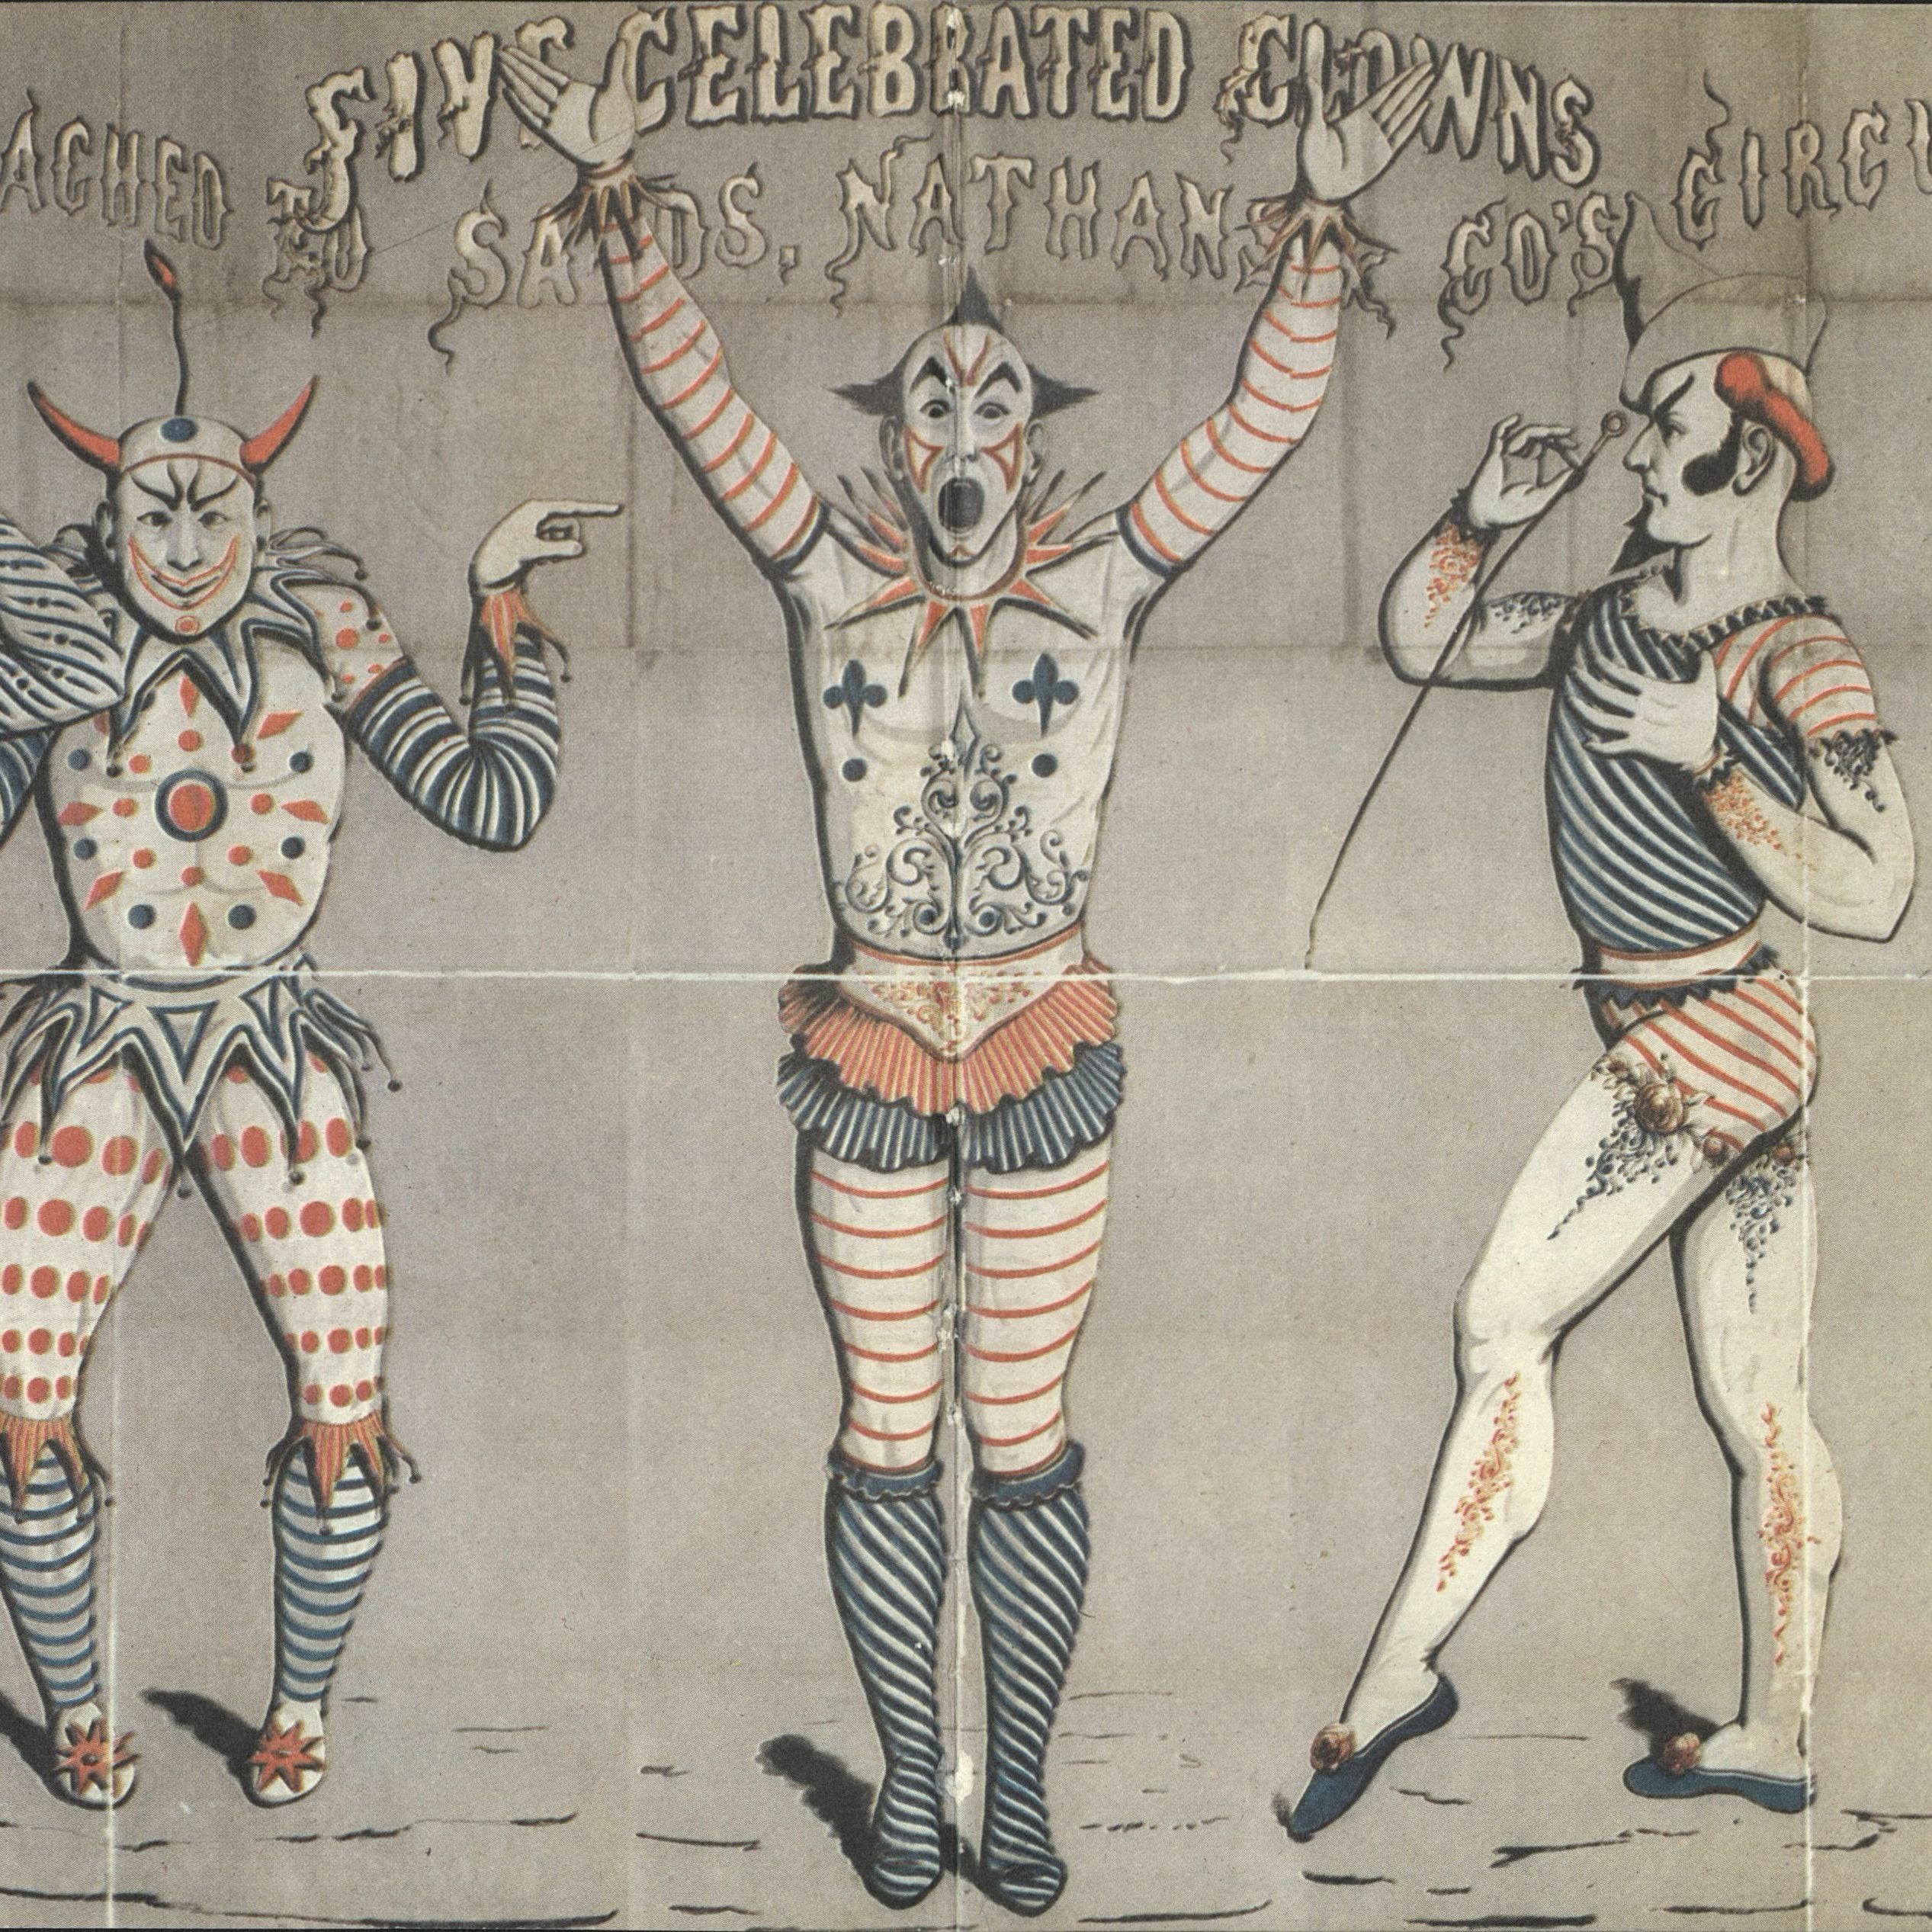 Artwork with clowns